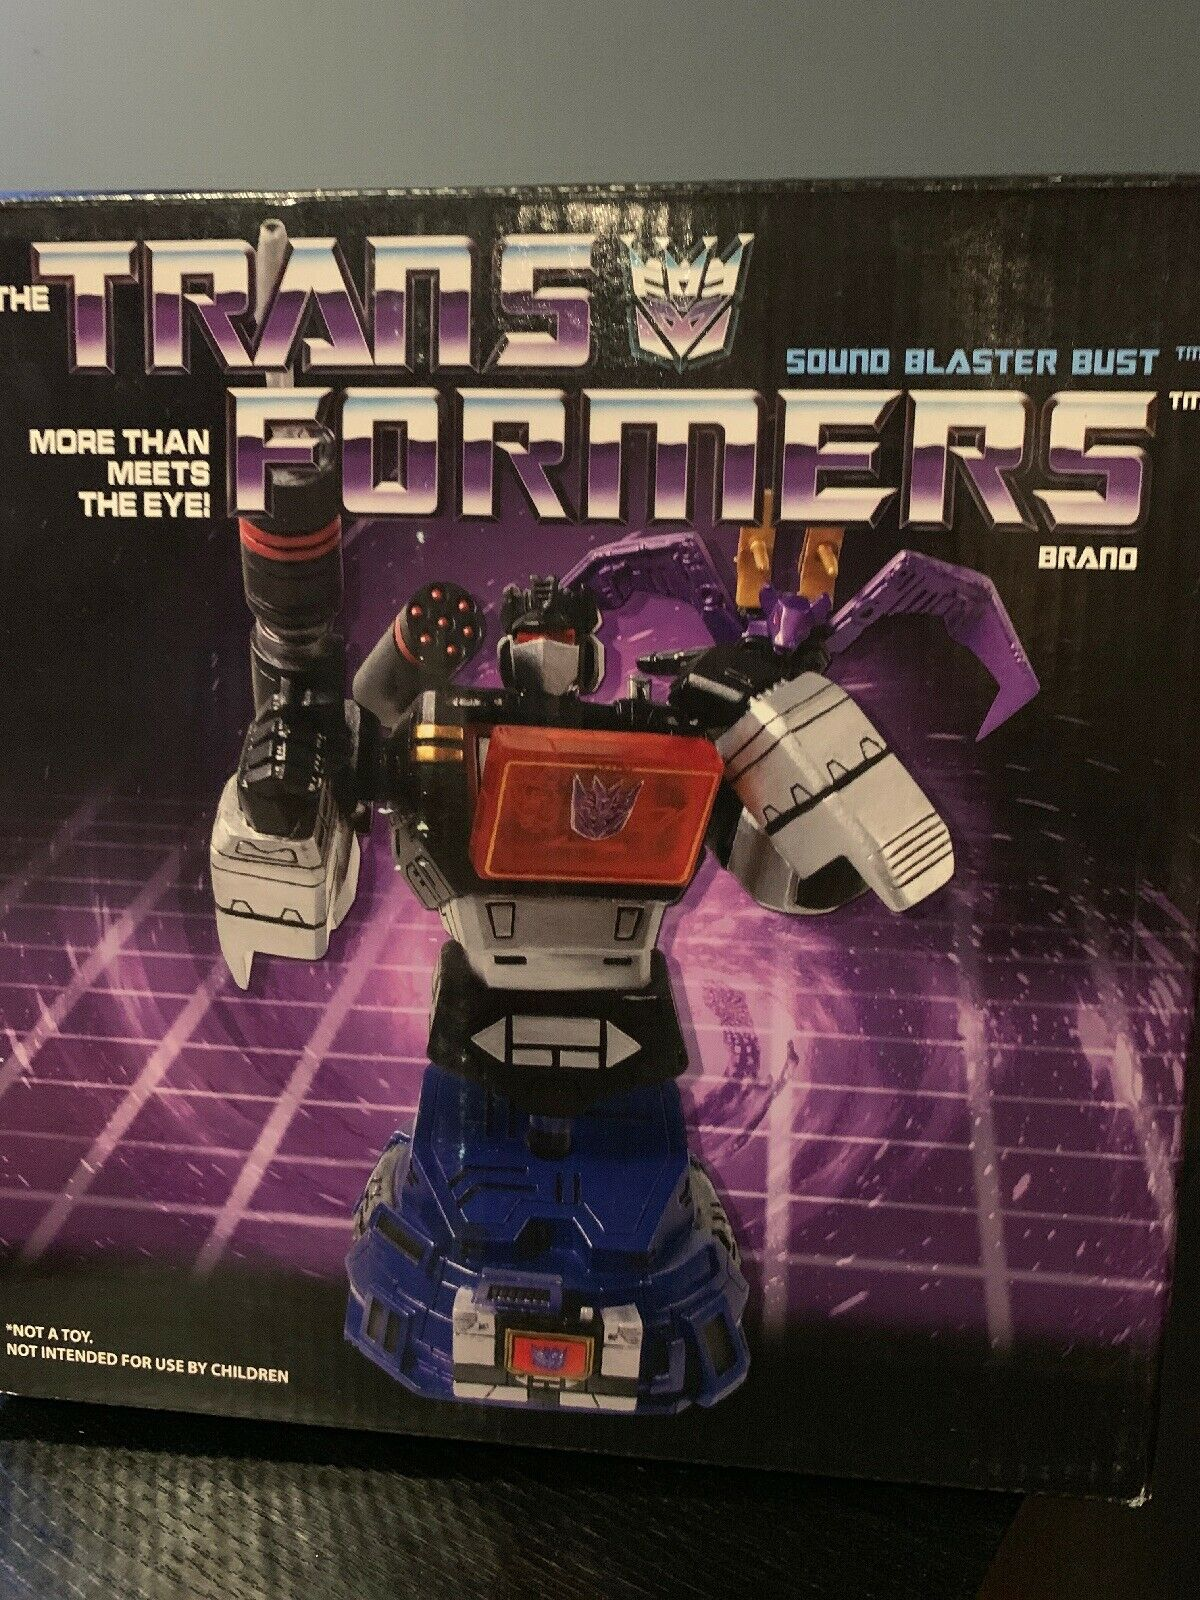 Transformers Diamond Sound Blaster Bust Soundwave Ratbat